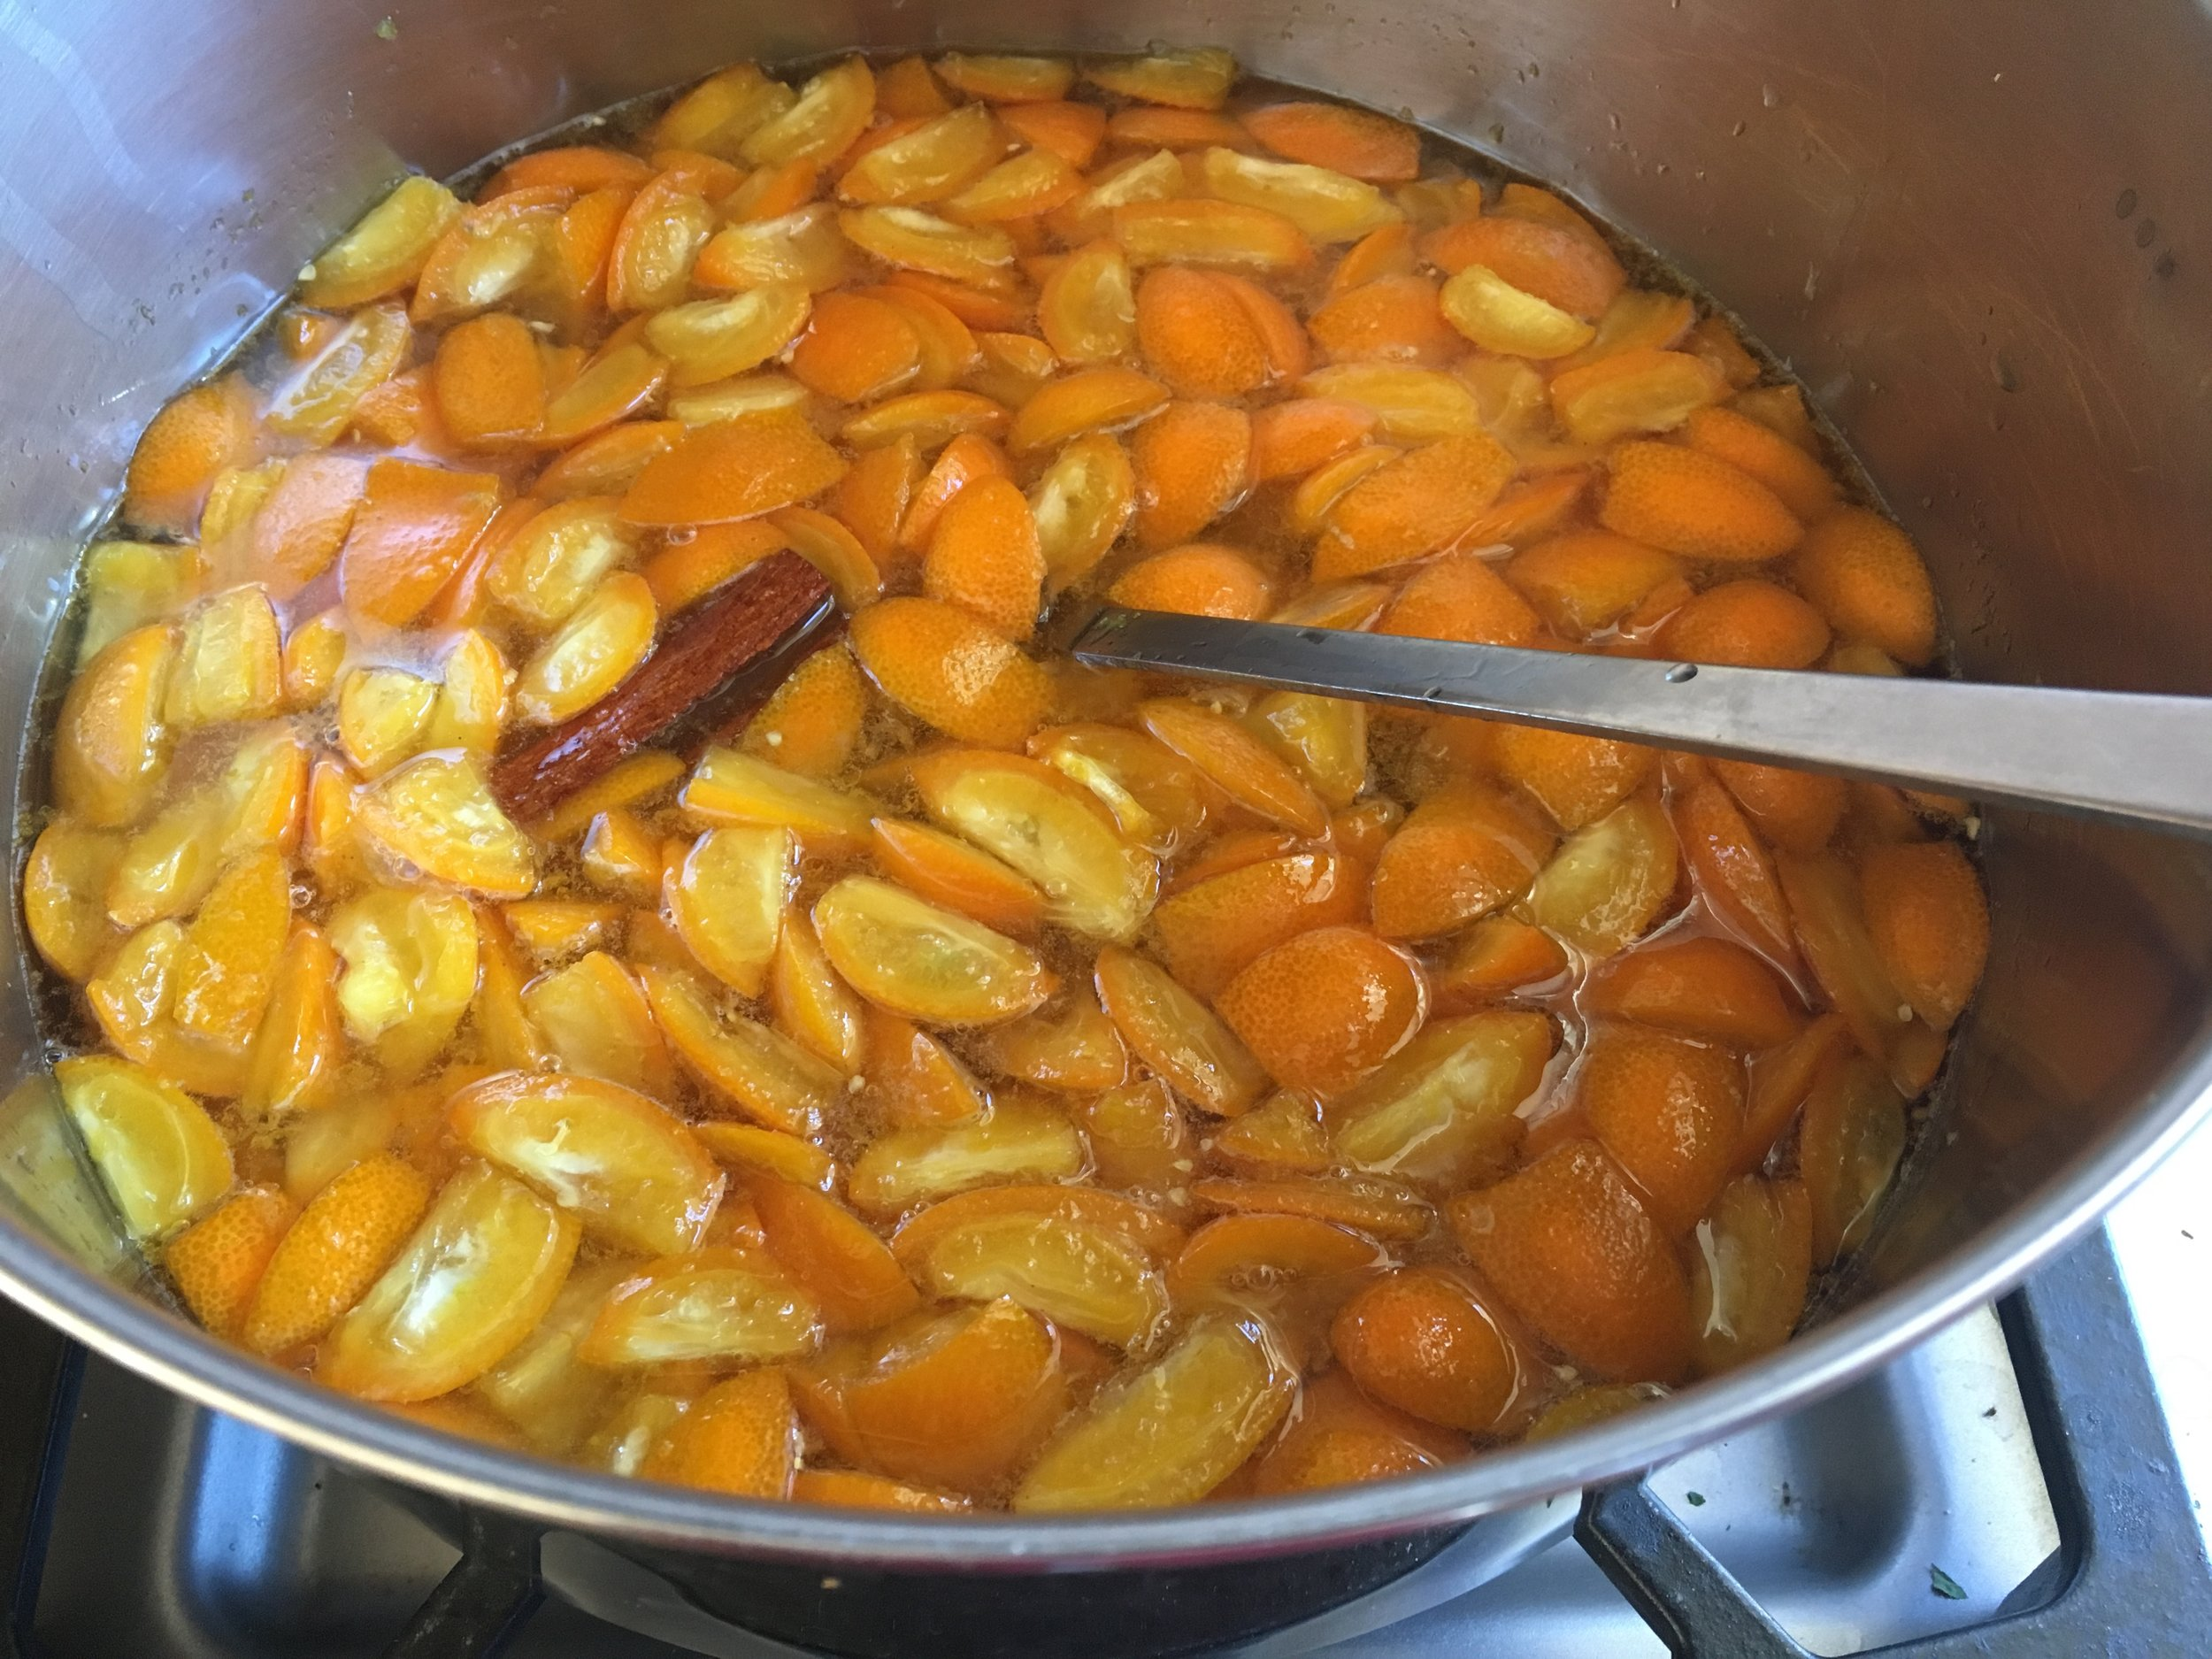 The recipe calls for kumquats, lemon zest and juice, star anise and a pinch of cayenne. I substituted half a cinnamon stick for the star anise.